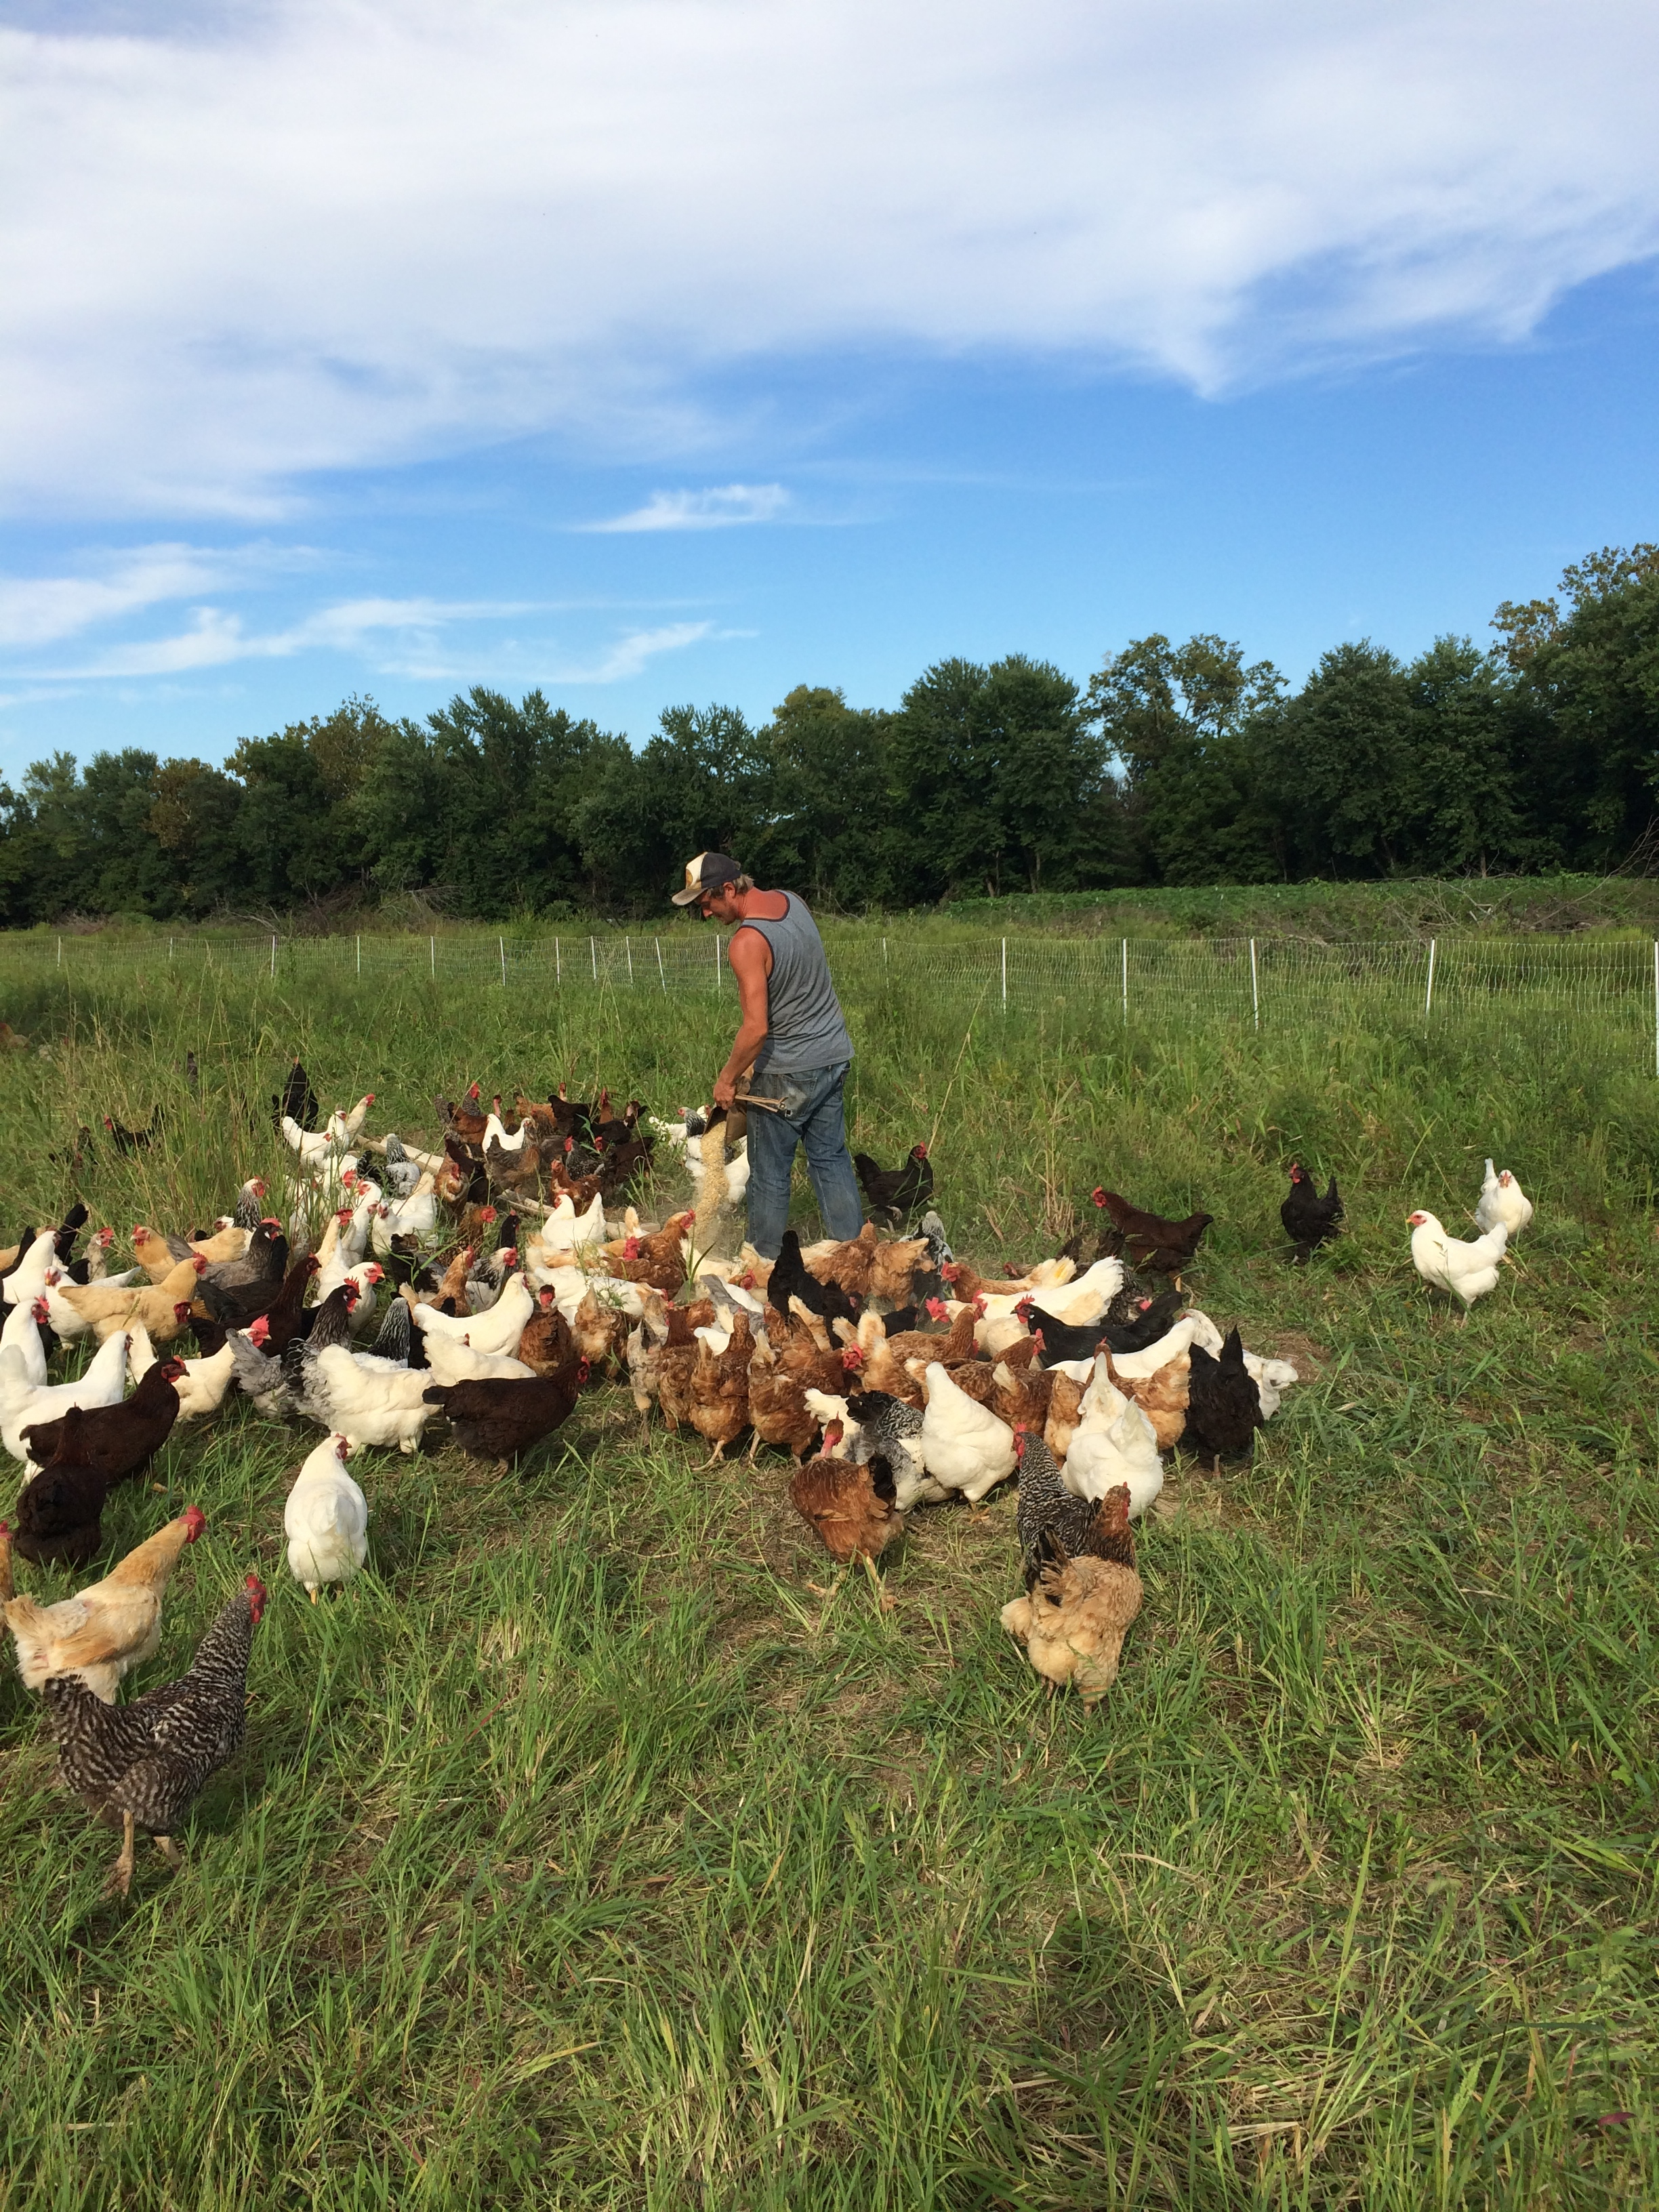 Chris feeding the chickens at the end of the day